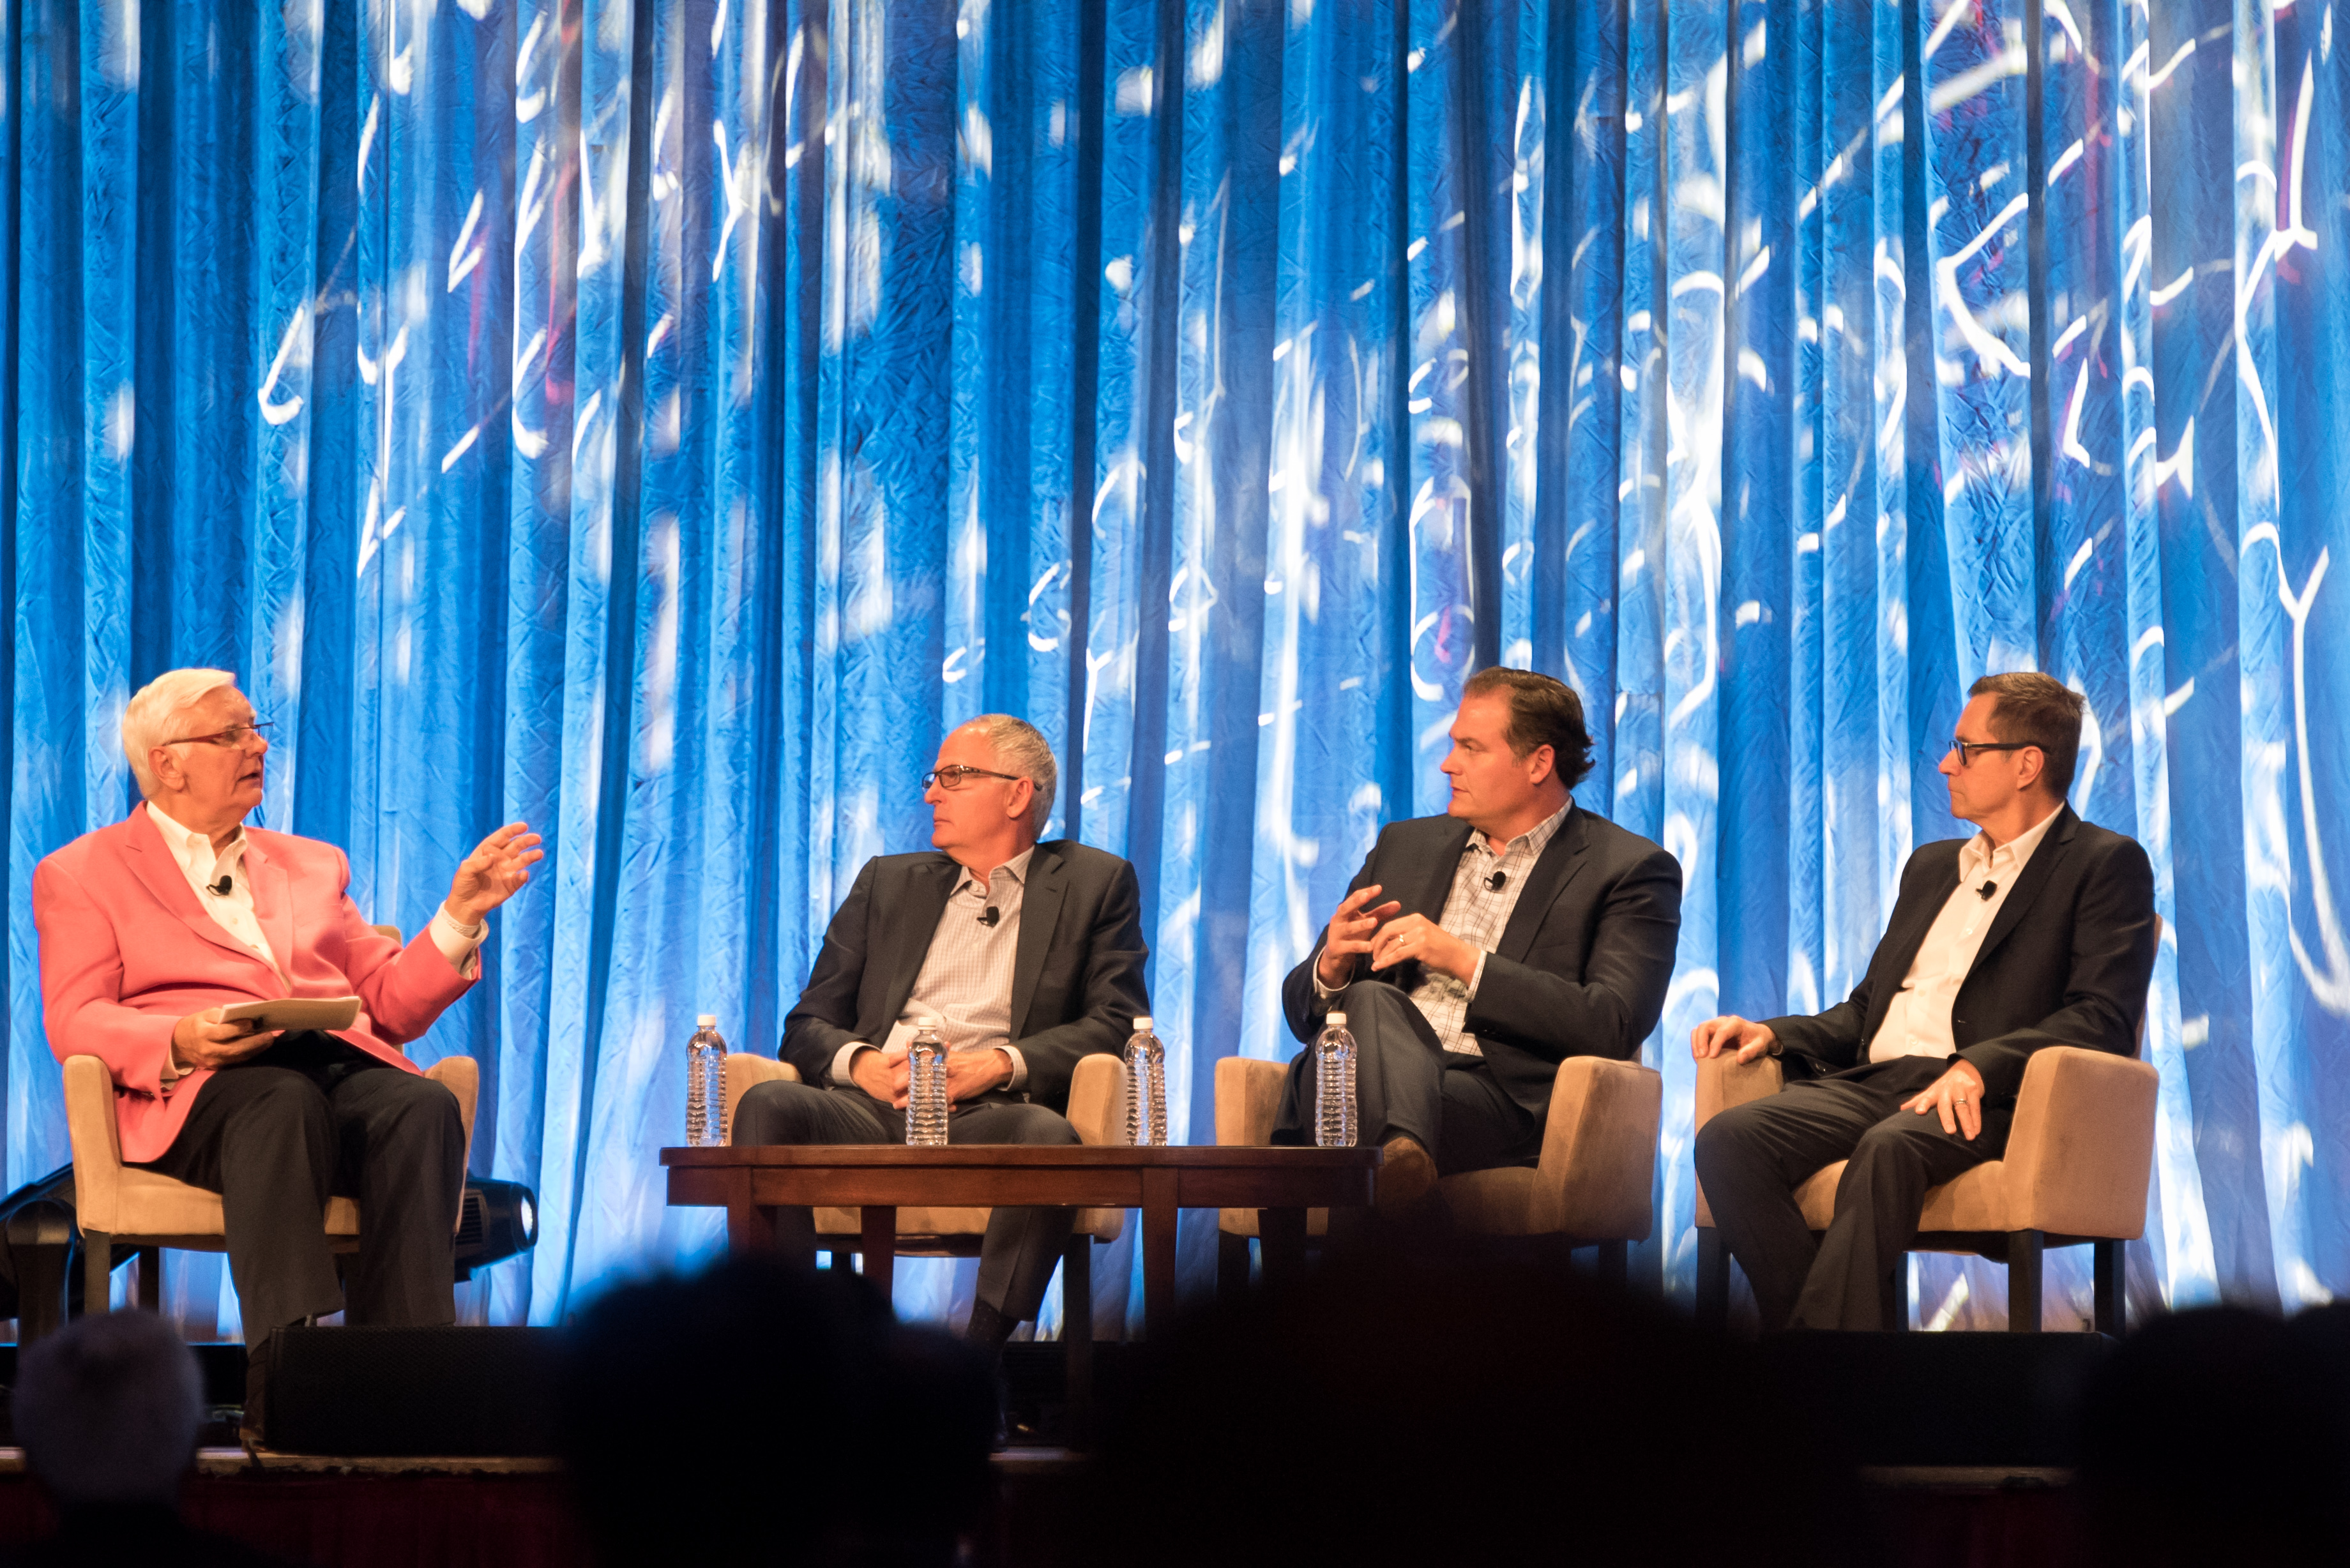 From left: Moderator Thom Blischok; Greg Wasson, former CEO, Walgreens Boots Alliance; Justin Dye, former chief administration officer, Albertsons Cos.; and Bob Mariano, former chairman, president and CEO, Roundy's.